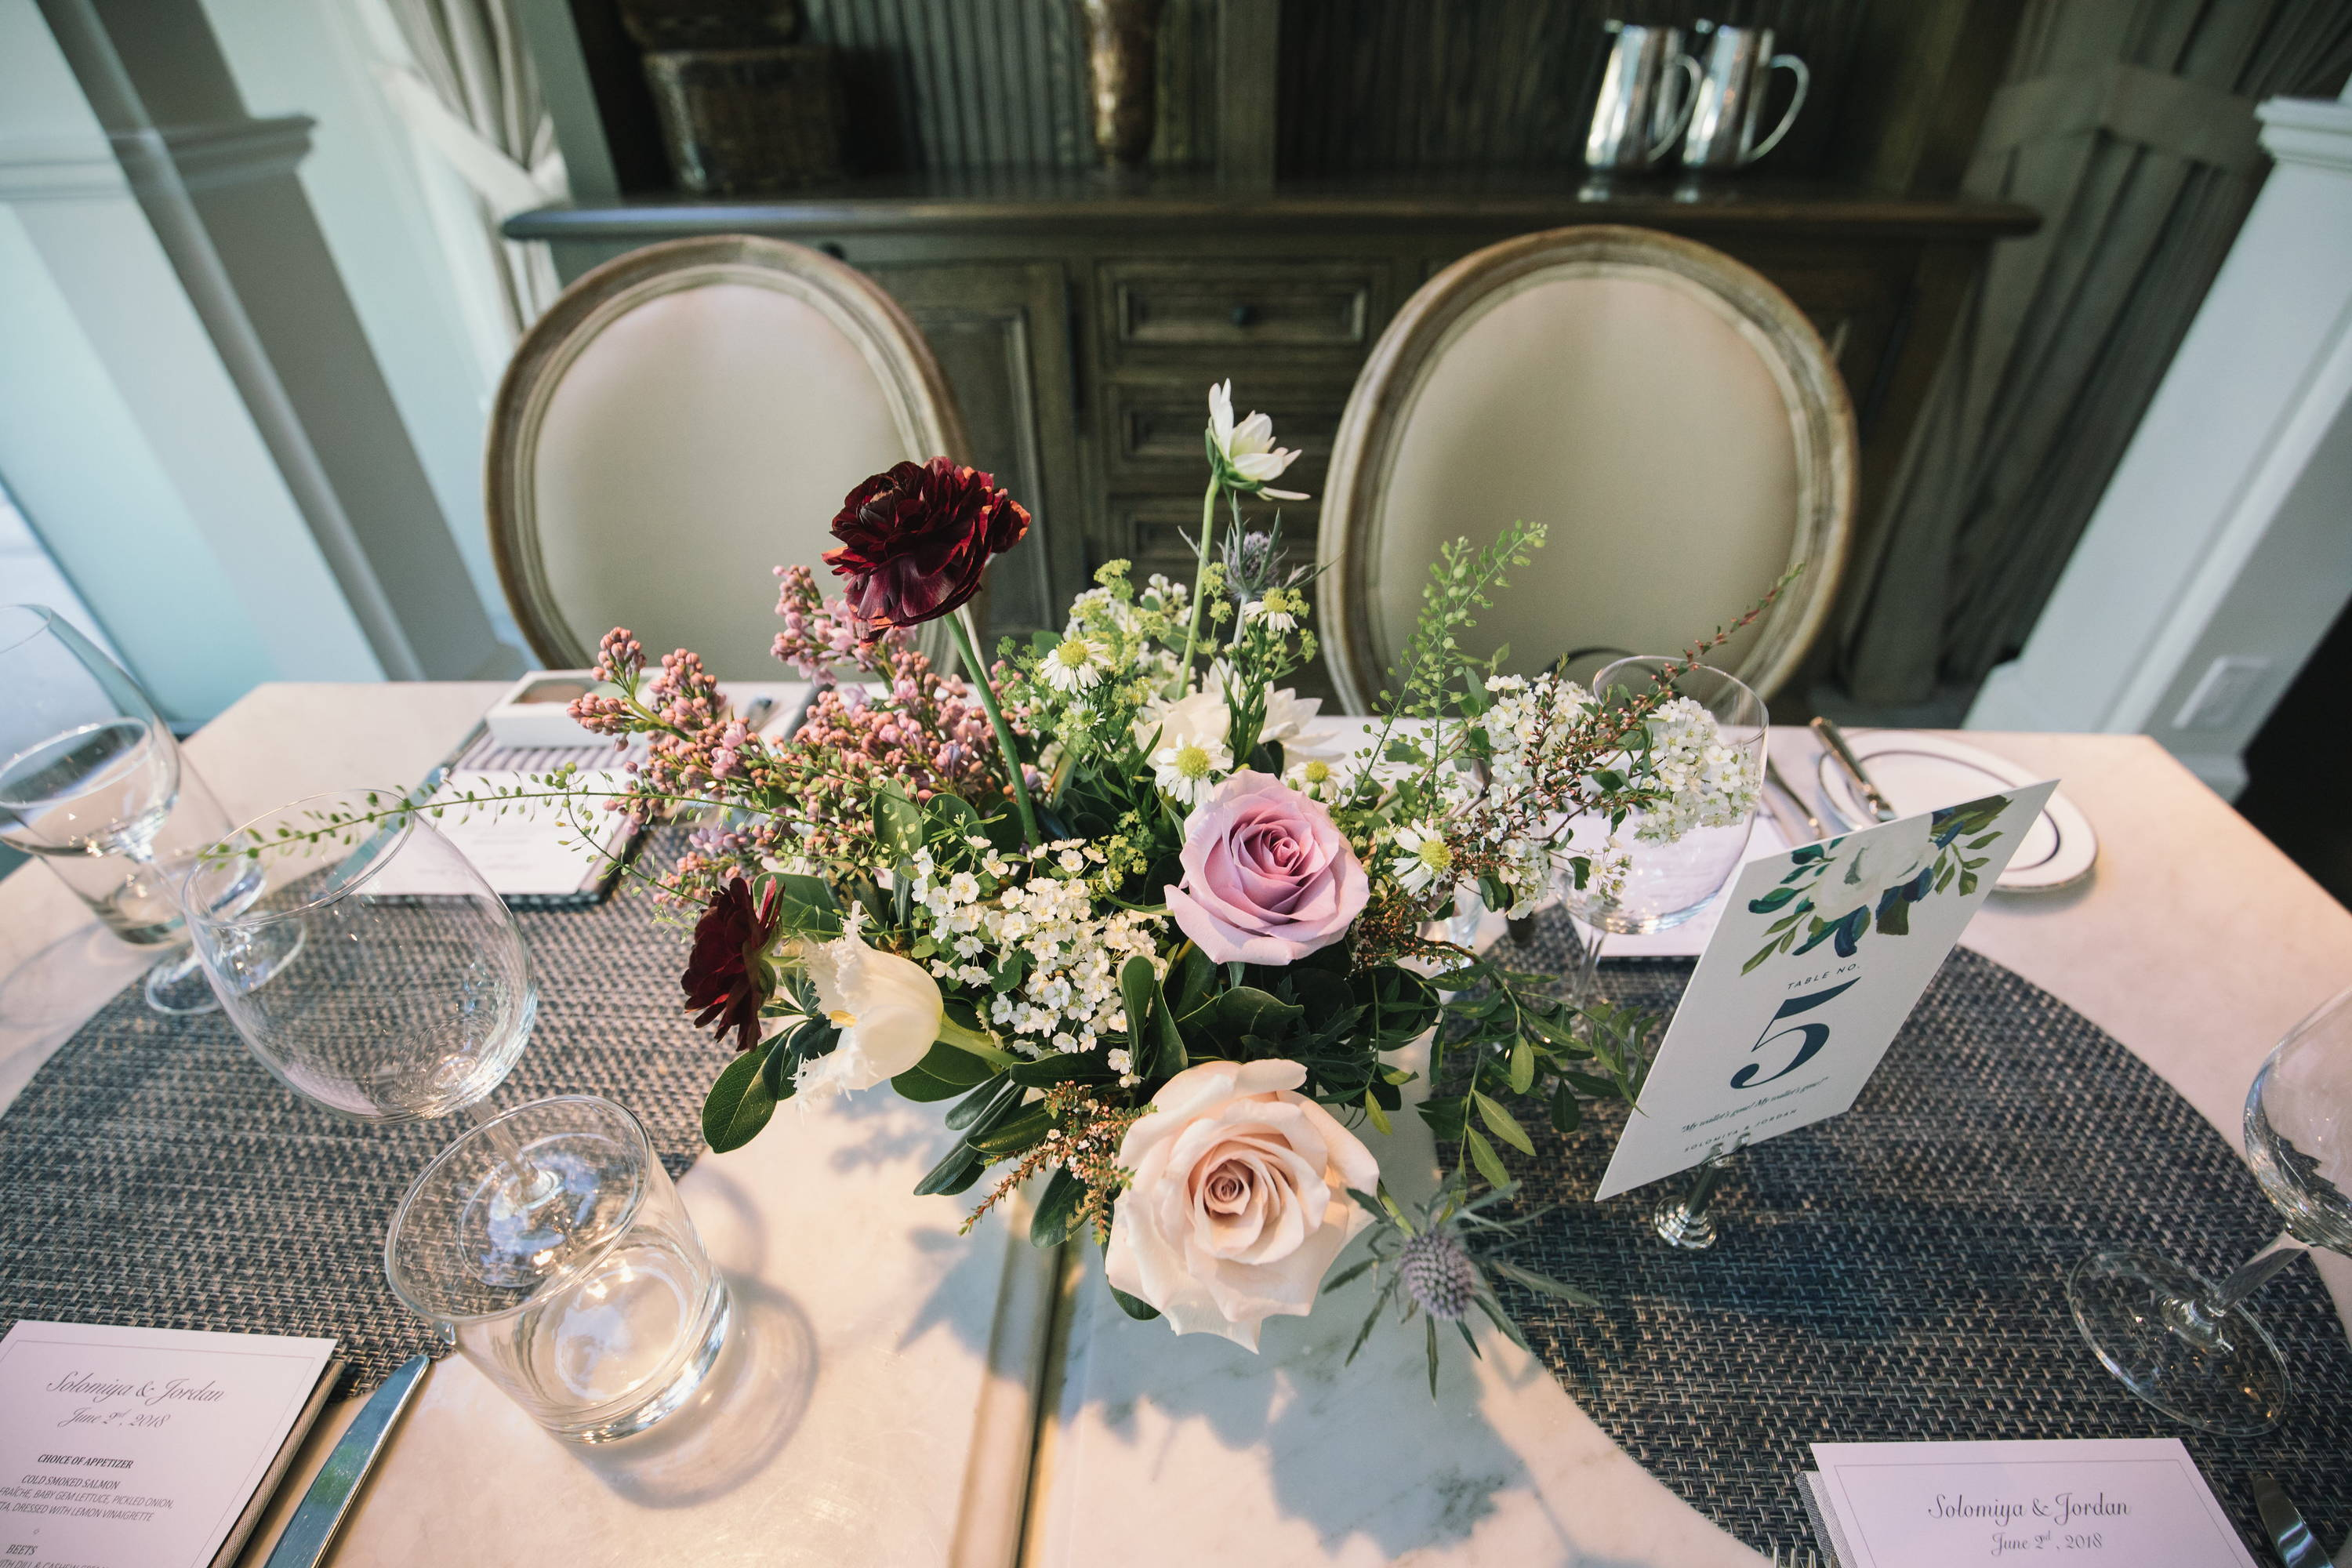 Wedding flowers at Colette Grand Cafe in Toronto